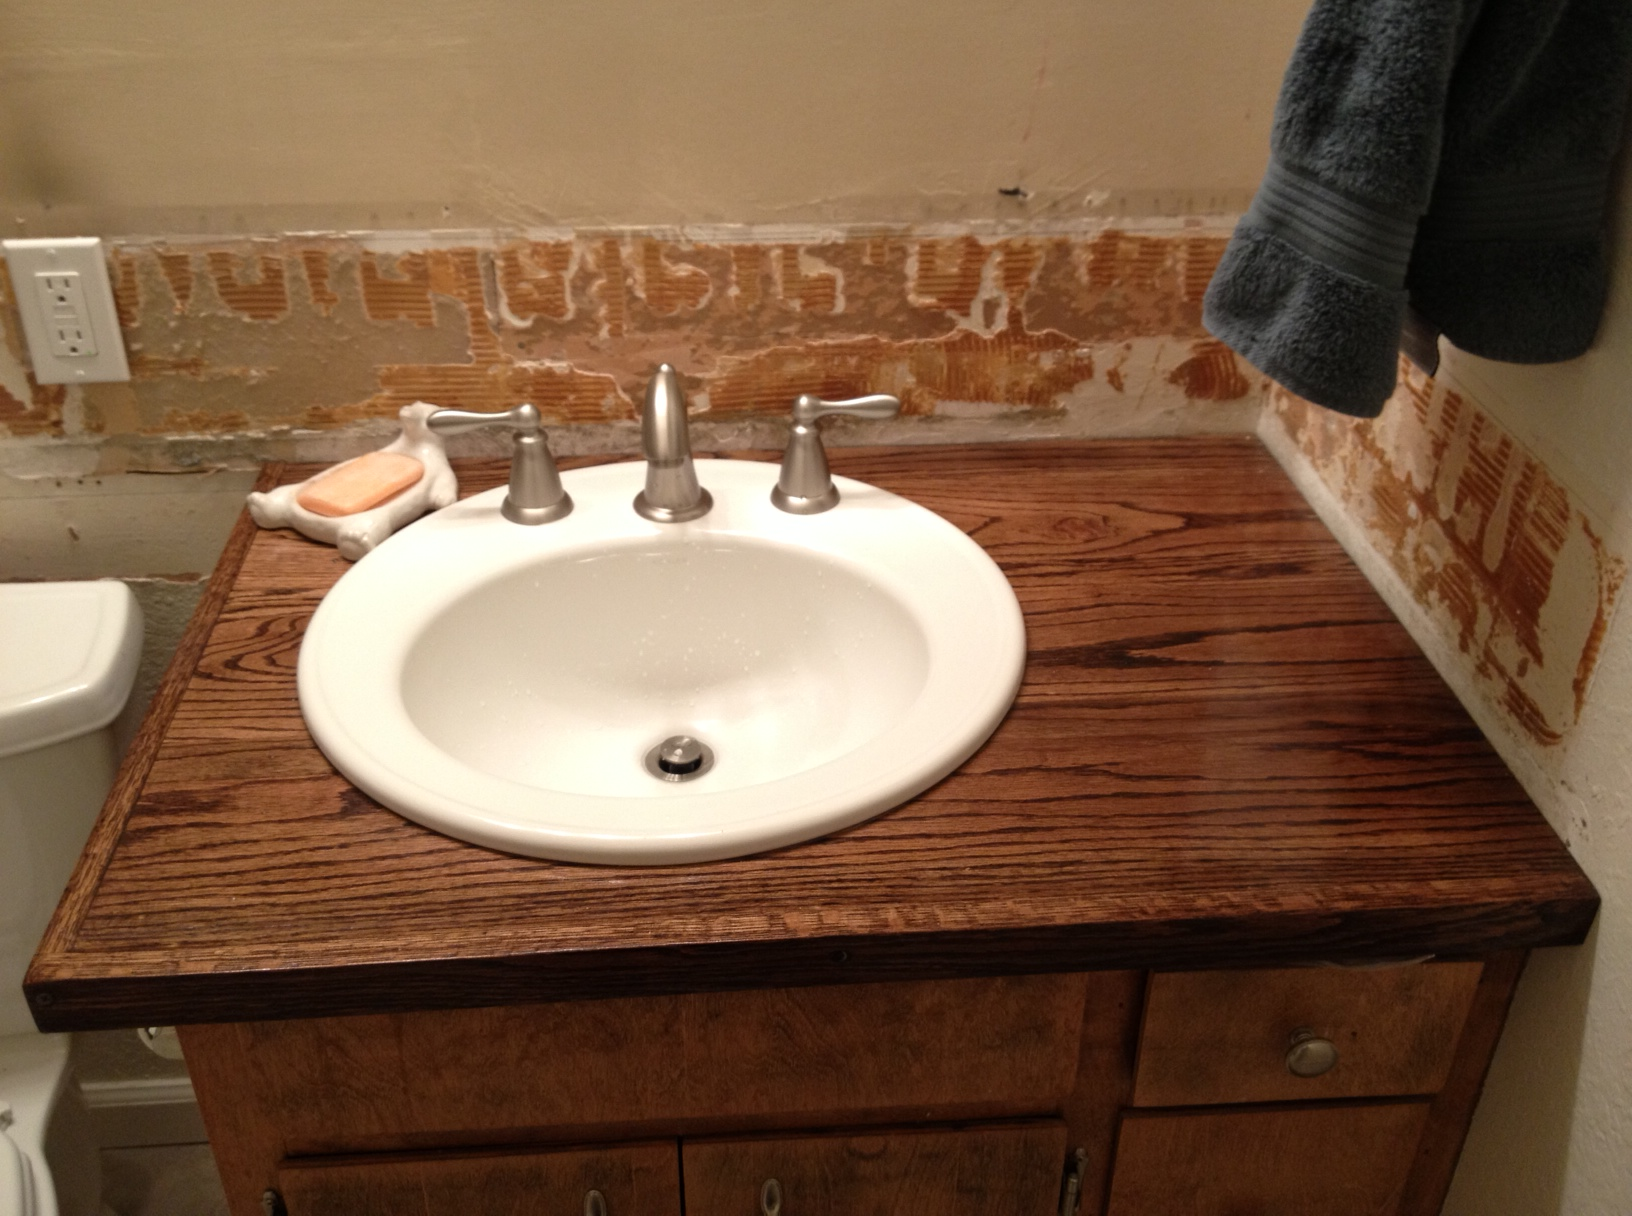 Not so hard hardwood bathroom vanity top life beyond silicon for Quick fix bathroom ideas